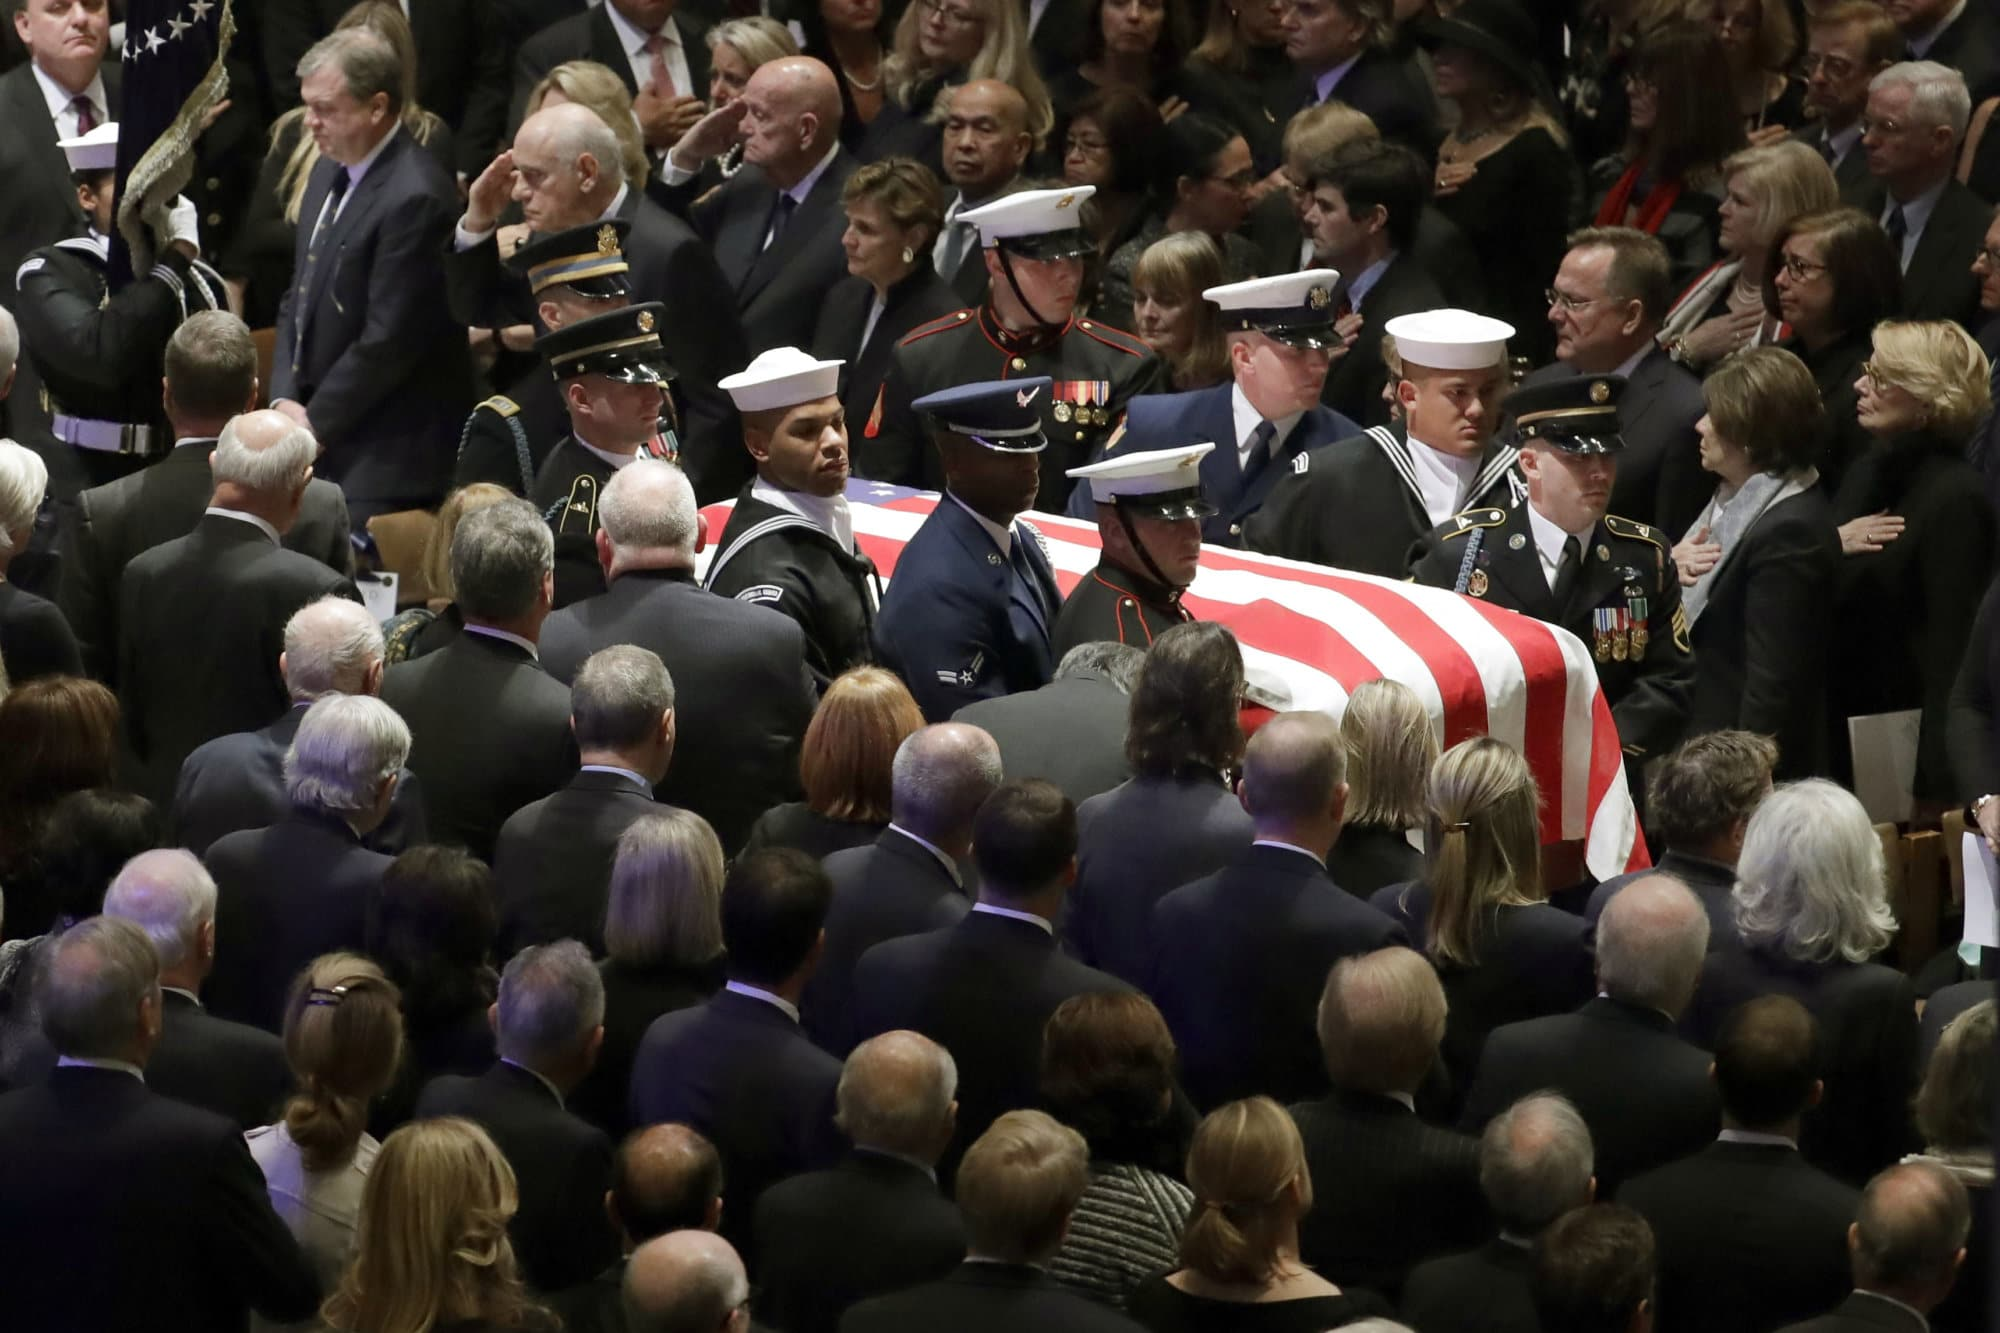 The flag-draped casket of former President George H.W. Bush is carried by a military honor guard during a State Funeral at the National Cathedral, Wednesday, Dec. 5, 2018, in Washington. (AP Photo/Evan Vucci)